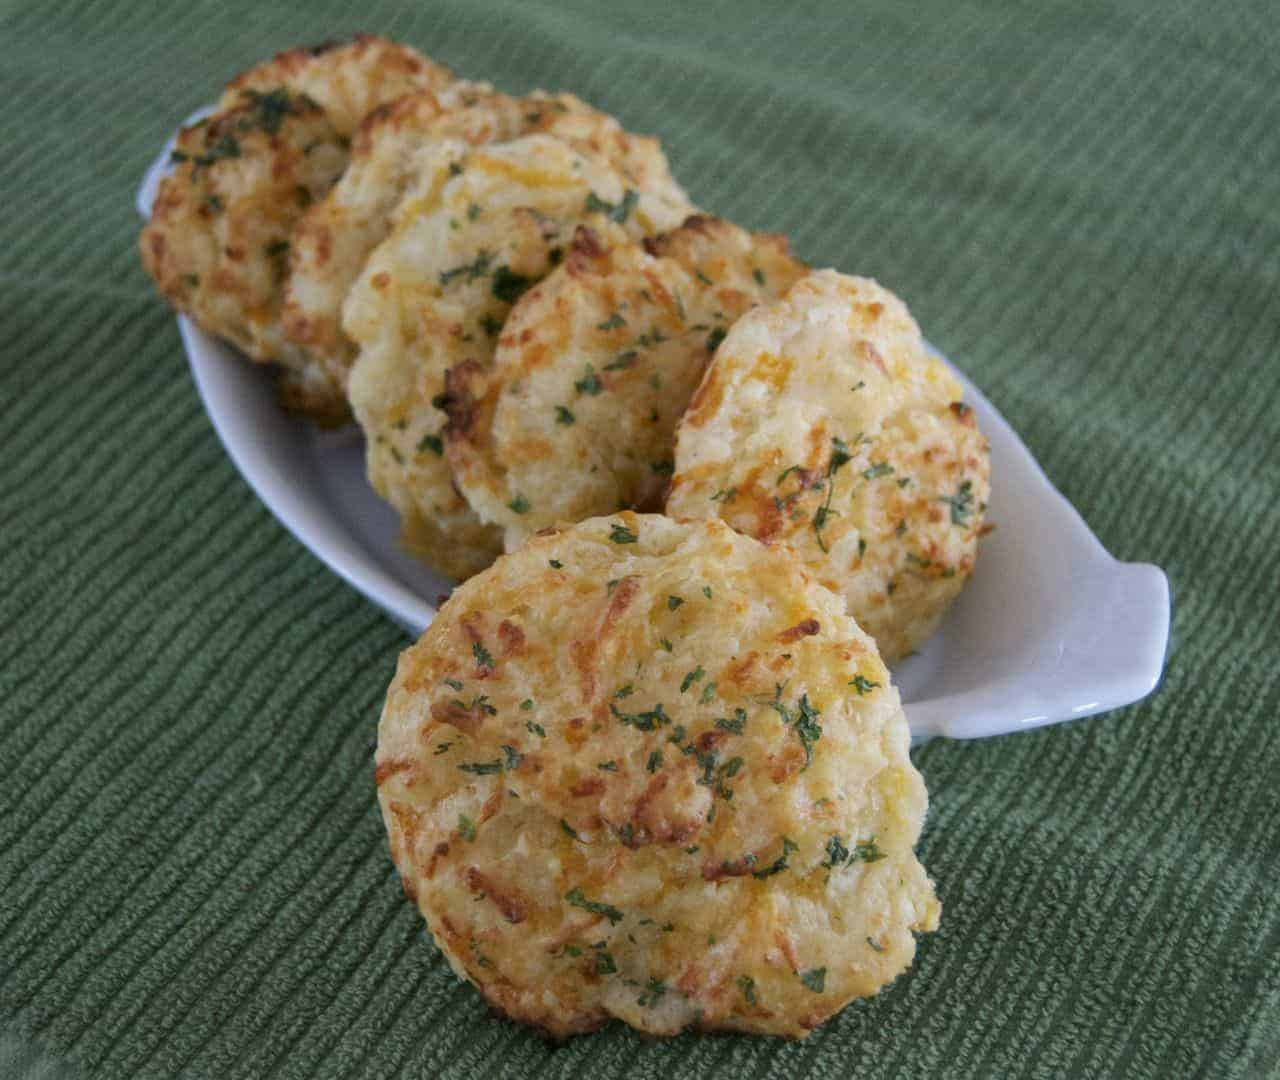 Red Lobster Cheddar Bay Biscuits - a copycat recipe - biscuits filled with cheddar cheese, a touch of Cajun spice and ready in just 20 minutes!